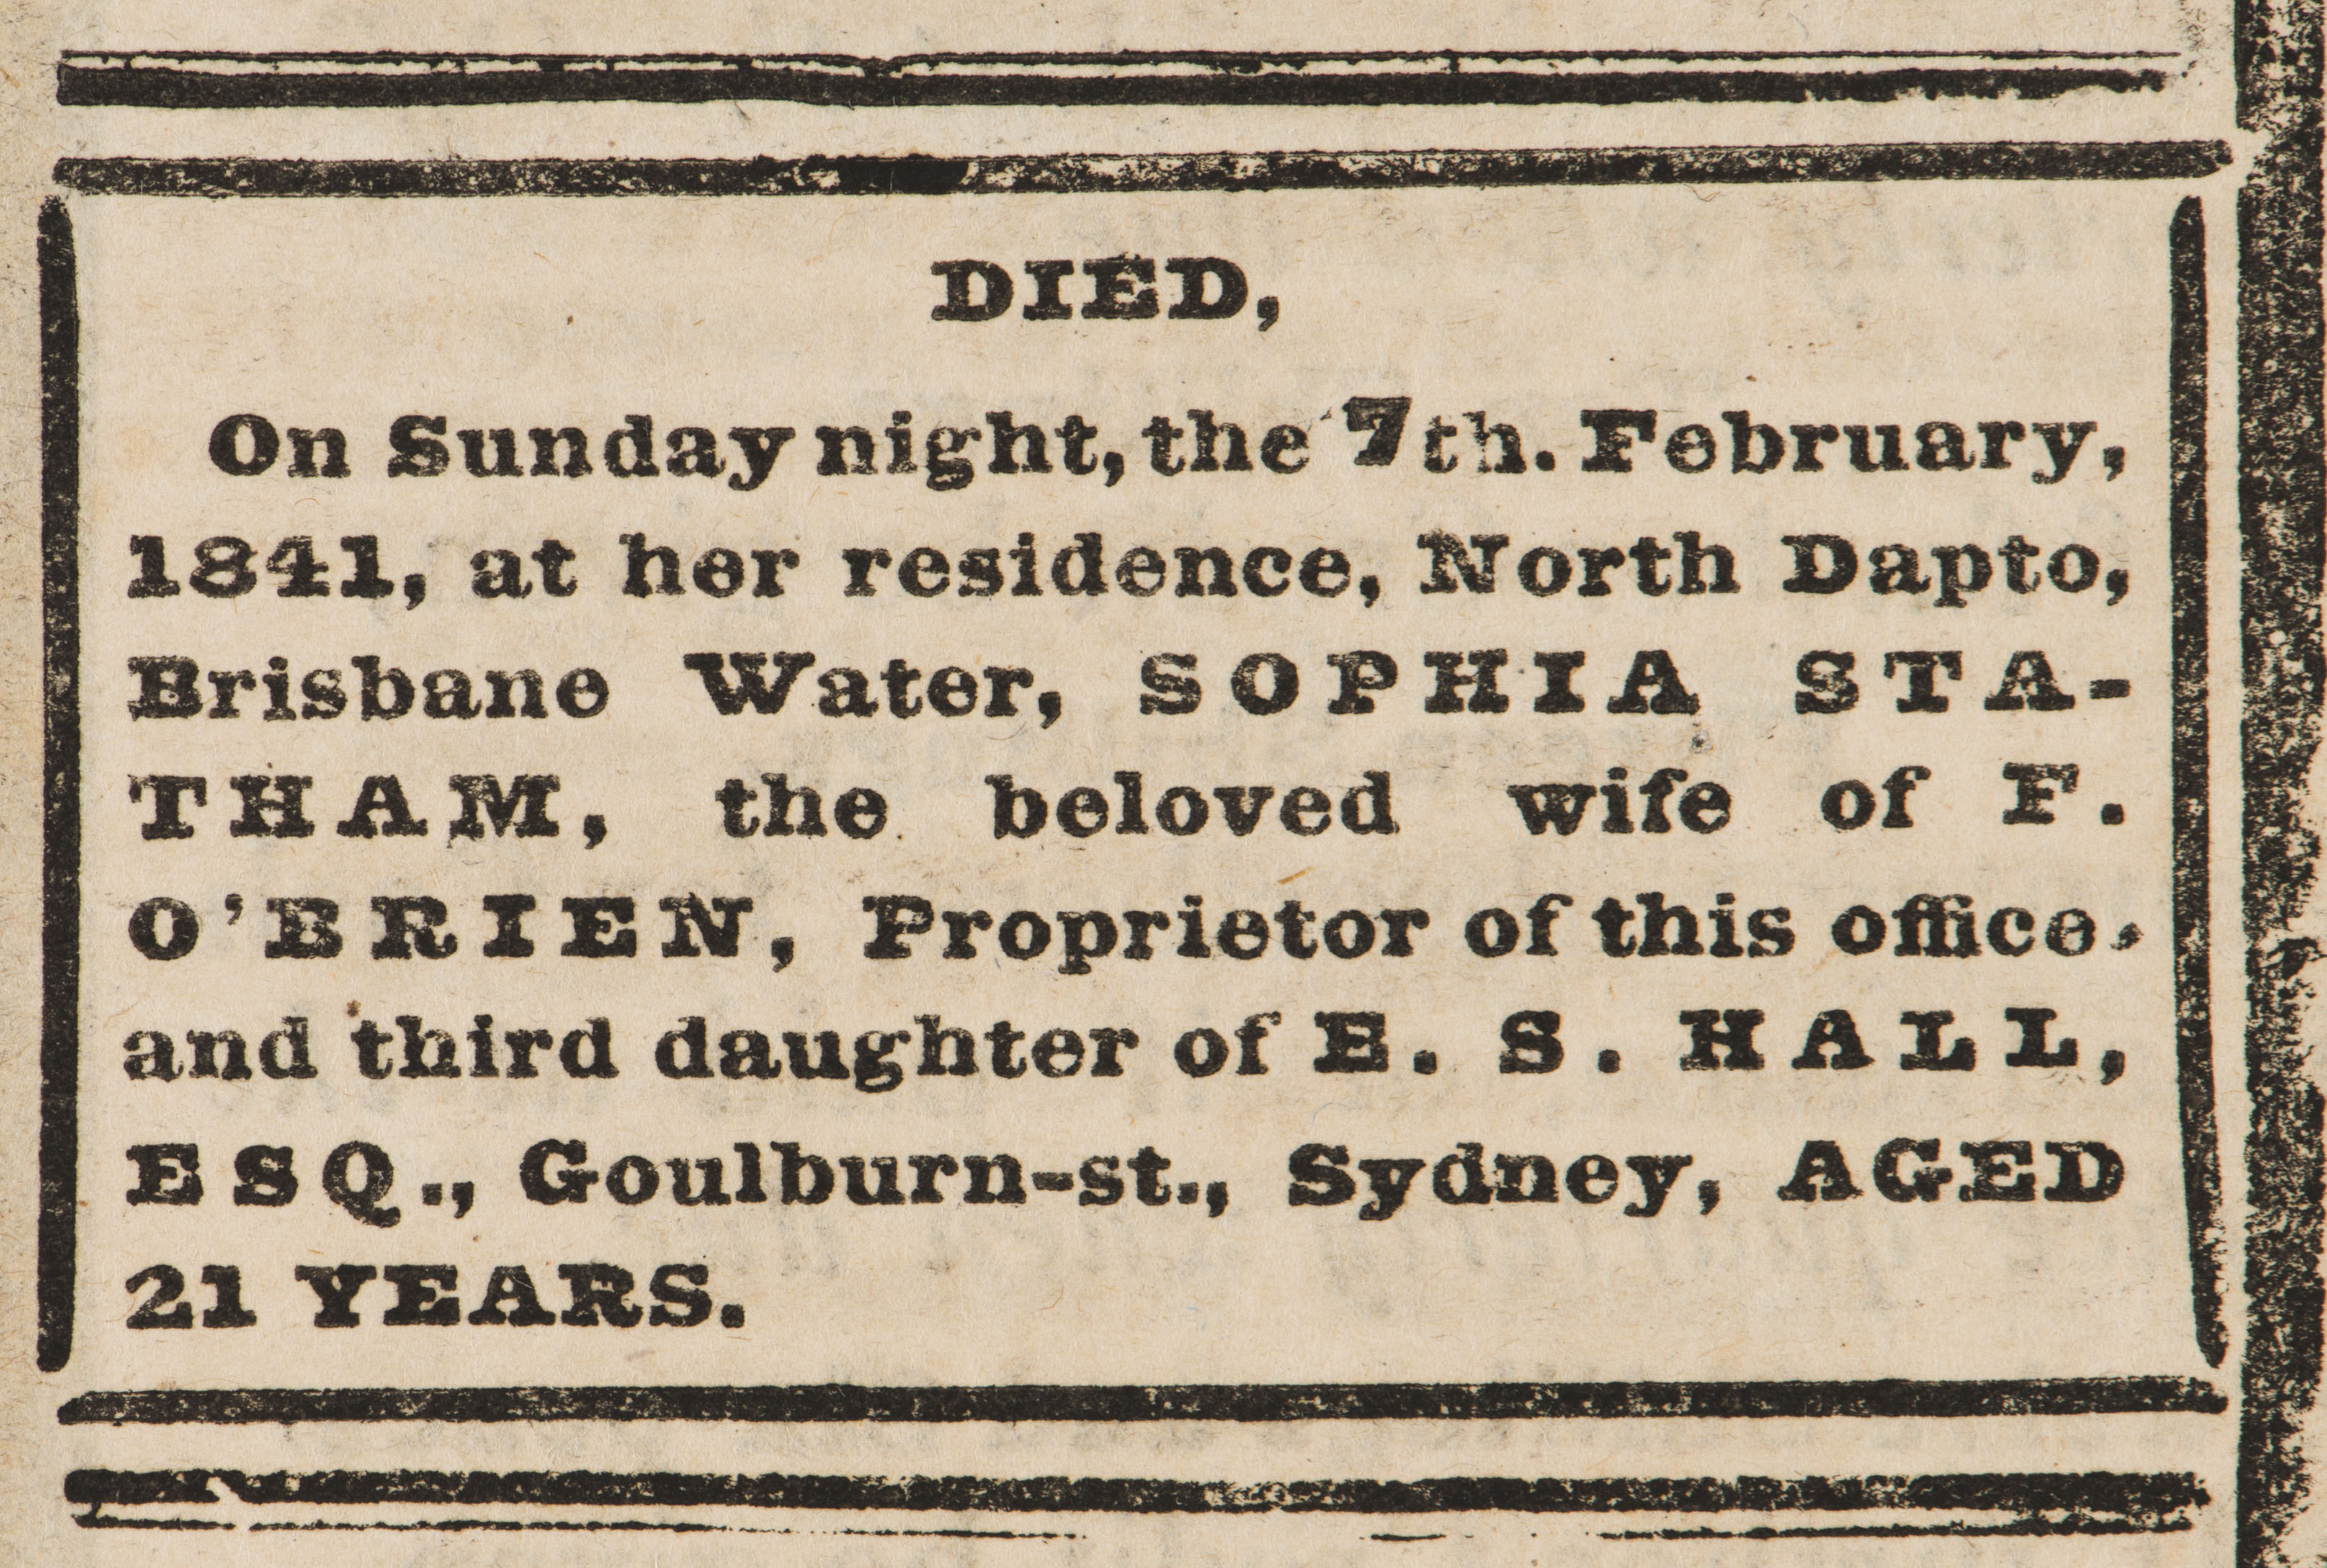 DIED, On Sunday night, the 7th February, 1841, at her residence, North Dapto, Brisbane Water, SOPHIA STATHAM, the beloved wife of F. O'BRIEN, Proprietor of this office, and third daughter of E. S. HALL, ESQ., Goulburn-st, Sydney, AGED 21 YEARS.